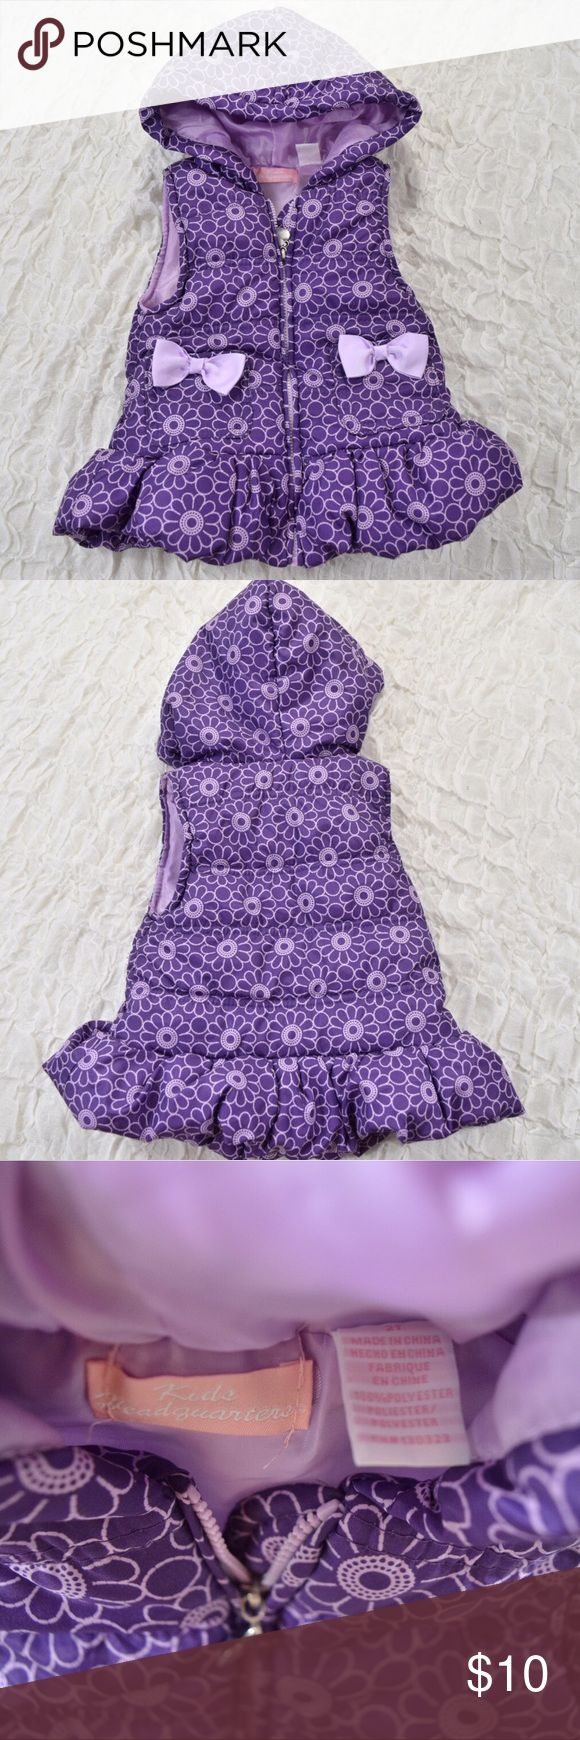 Purple toddler girl puffer vest Adorable baby girl puffer vest🎀Purple🎀Size 2T🎀100% polyester🎀Front pockets with bow accents🎀Great condition🎀Smoke and pet free home Kids Headquarters Jackets & Coats Vests